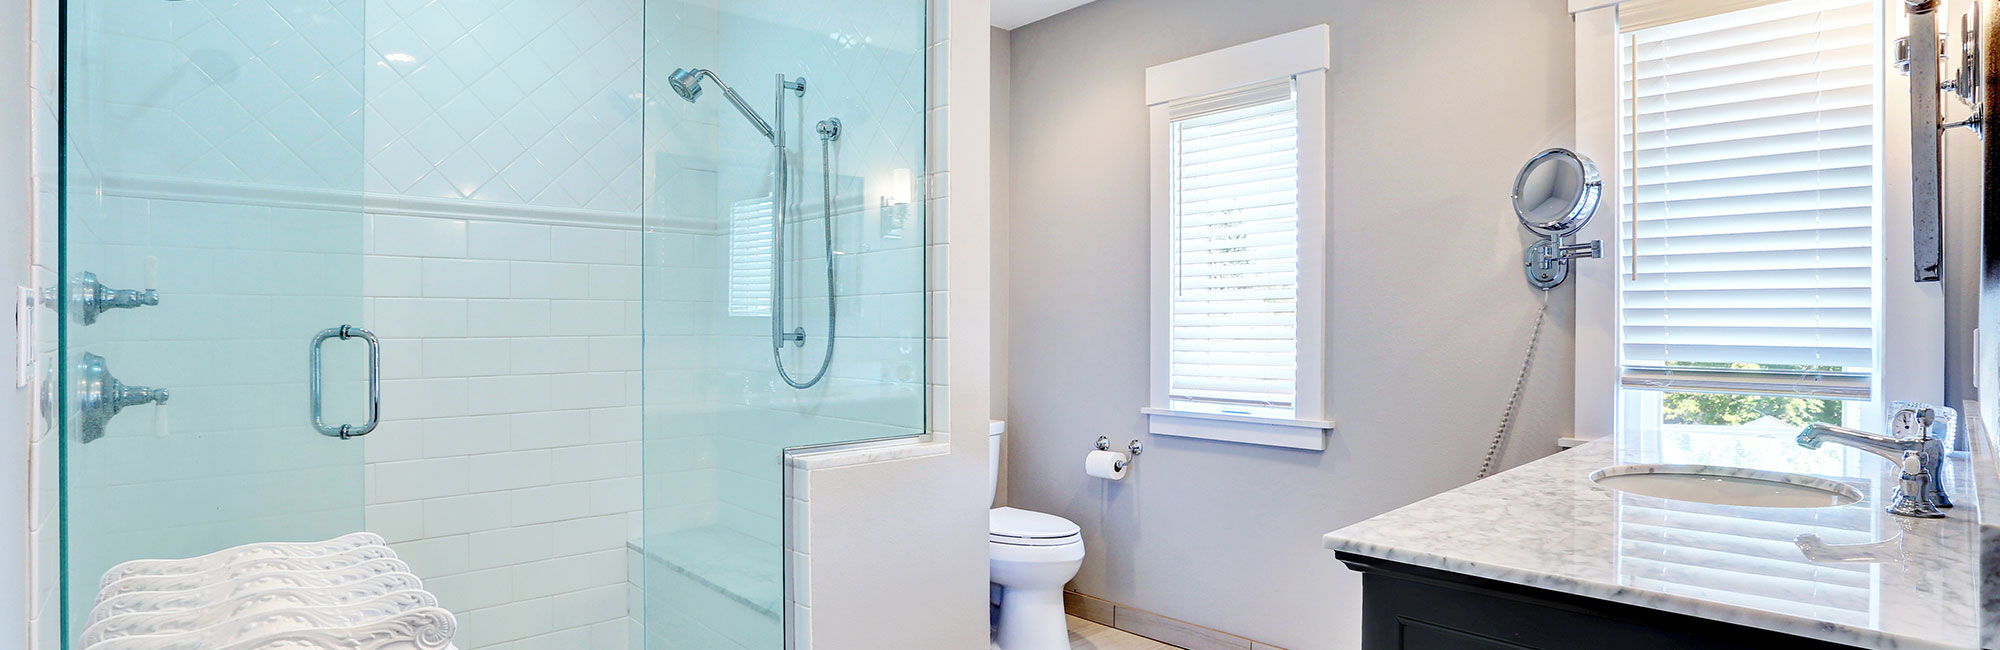 Large Washroom - Walk-in Shower